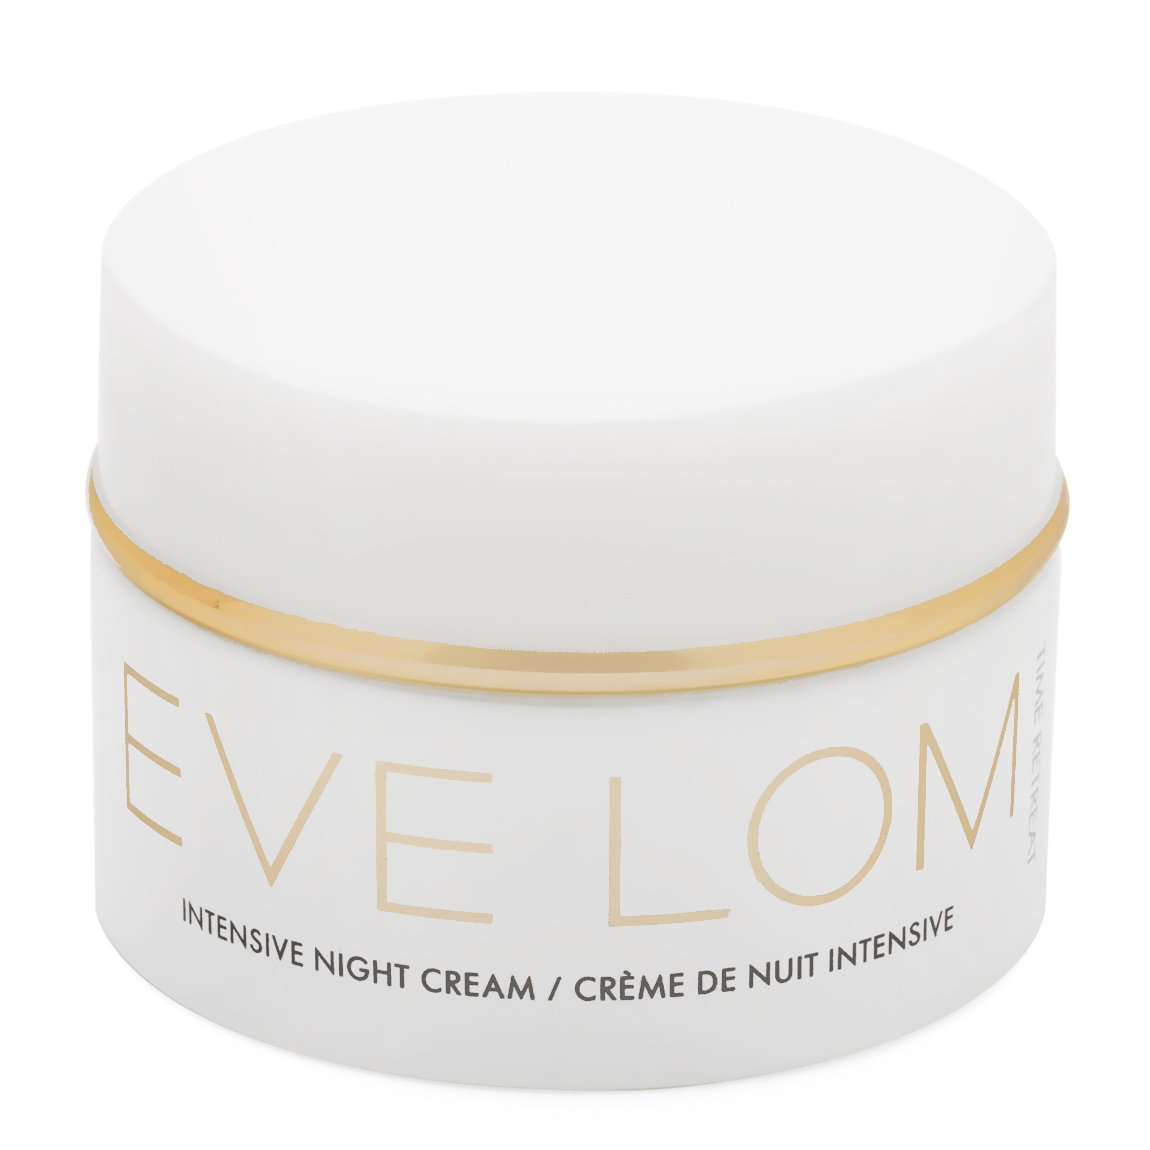 EVE LOM Time Retreat Intensive Night Cream product swatch.